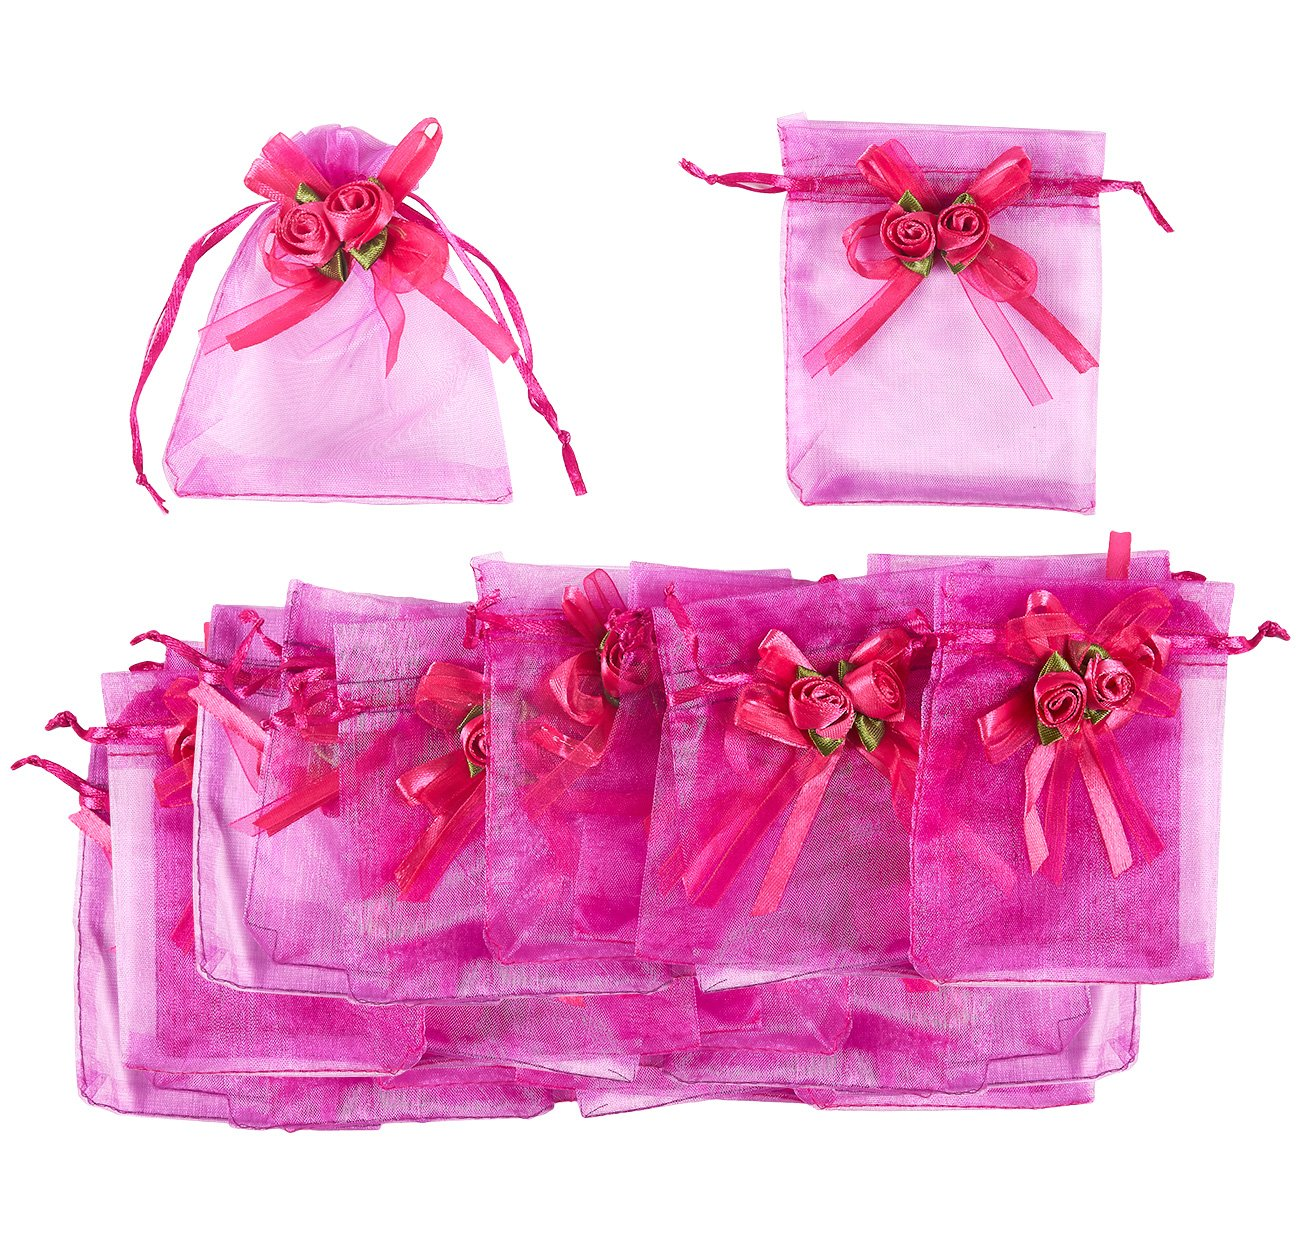 Amazon.com: Jewelry Pouch Drawstring Bag – 100 Piece Organza Gift ...